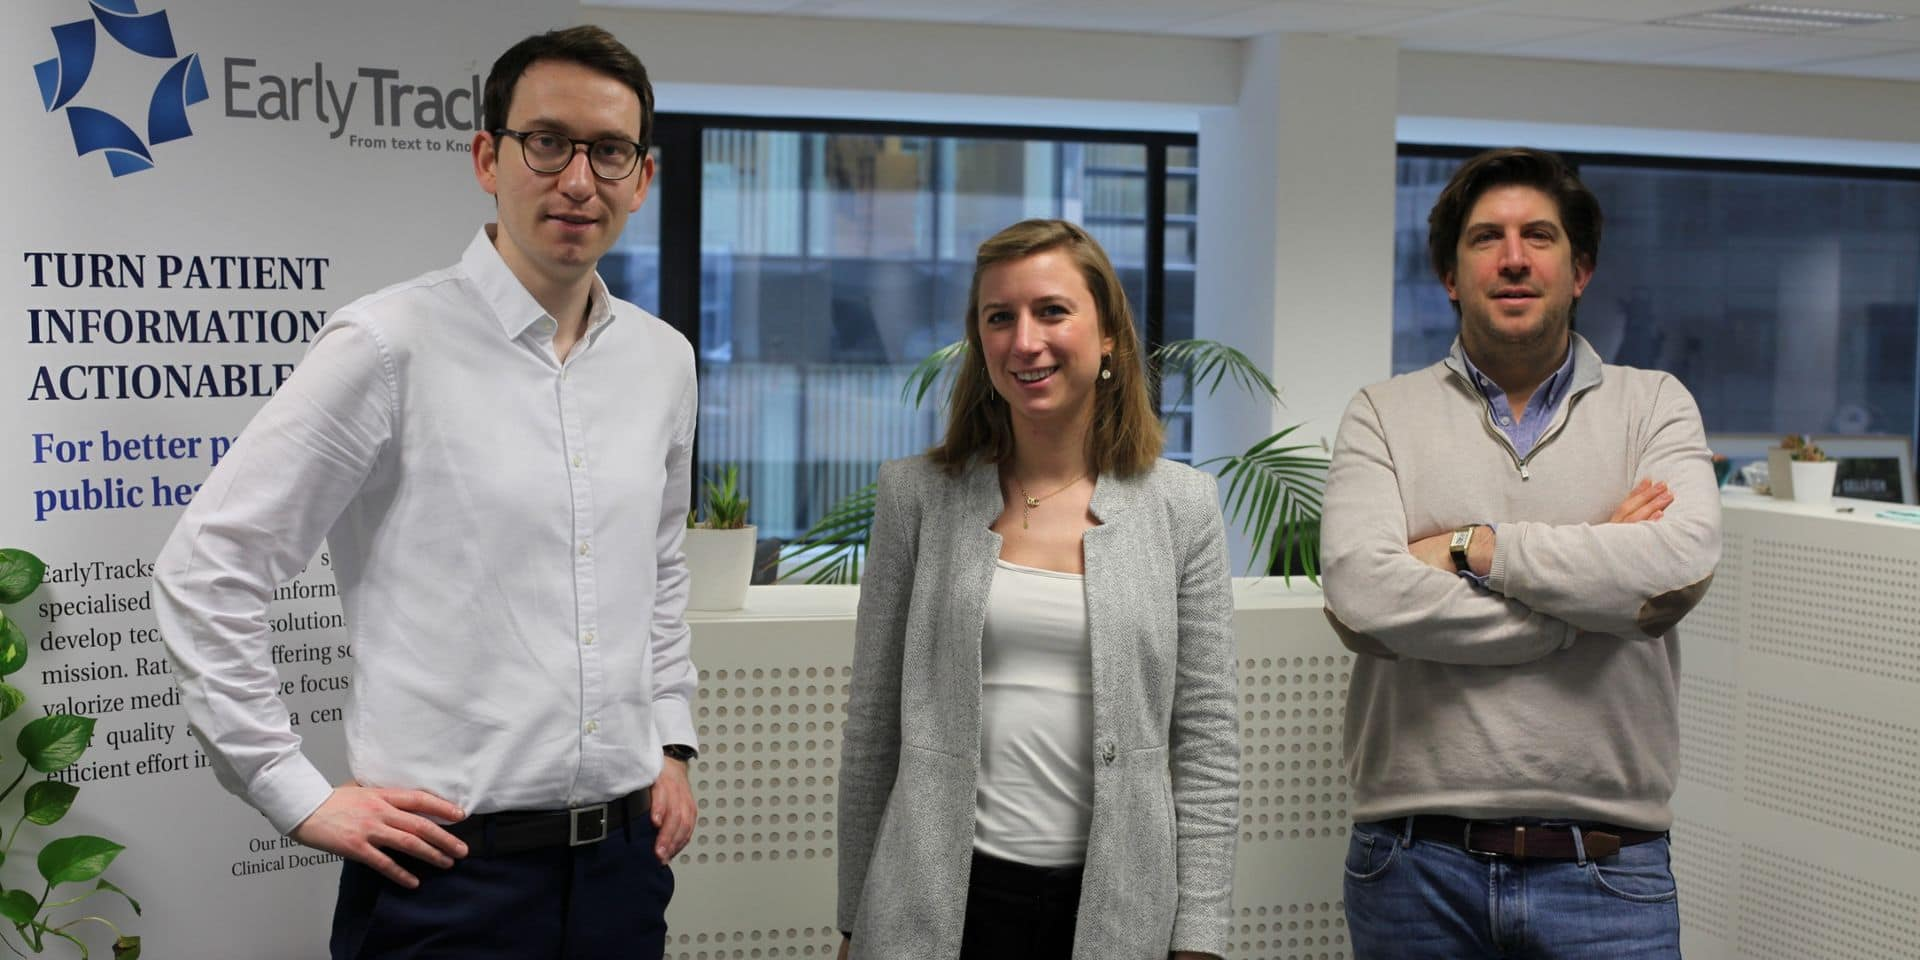 Hogne Ulla (Business Developer), Aline Mathey (Product Manager) et Brice de Behault (CEO).